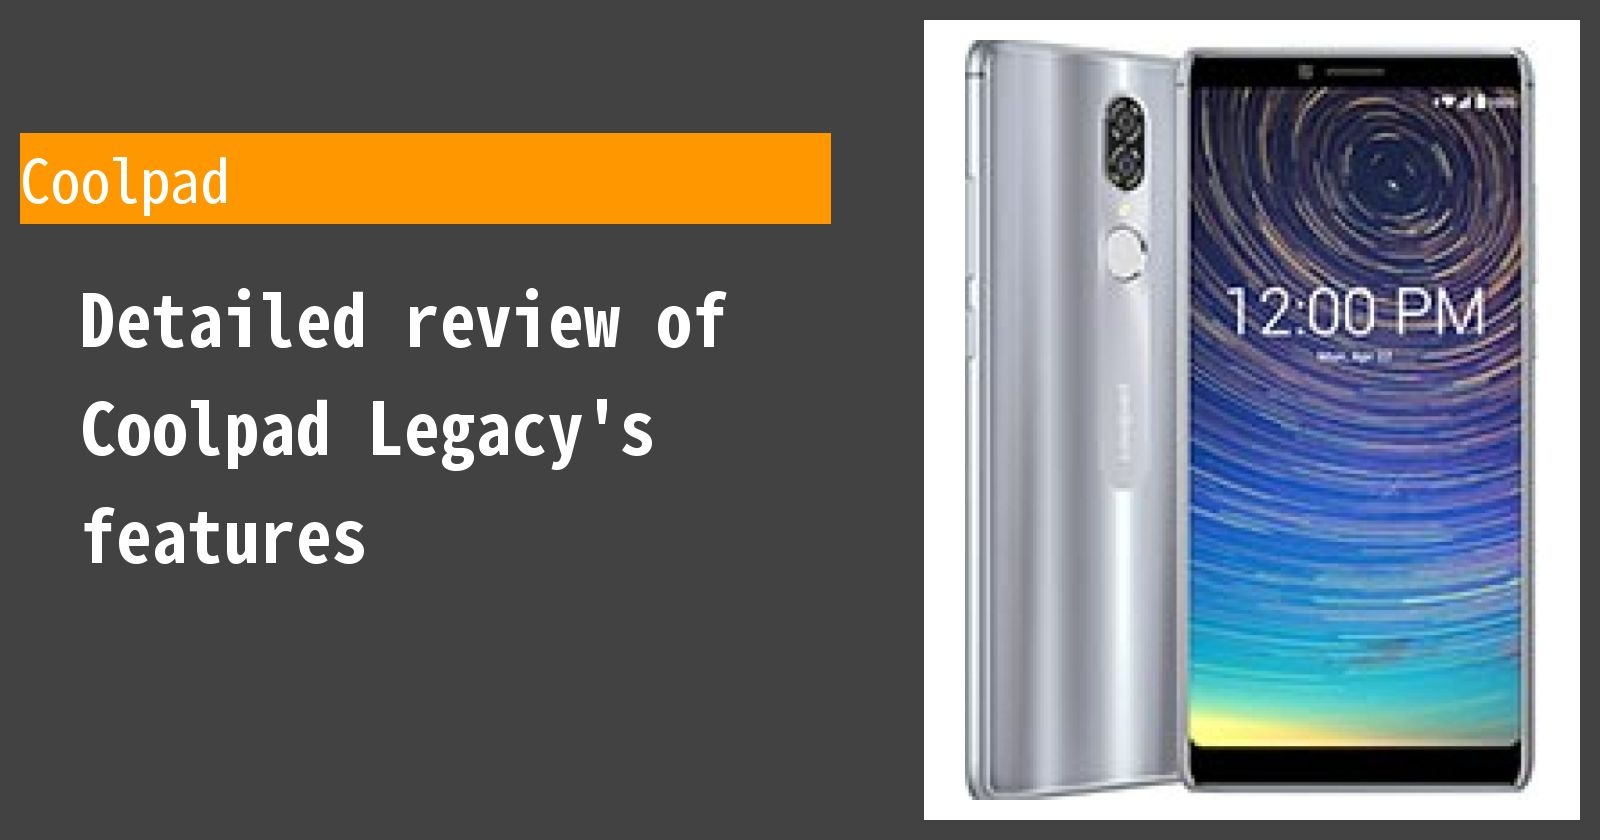 Detailed review of Coolpad Legacy's features